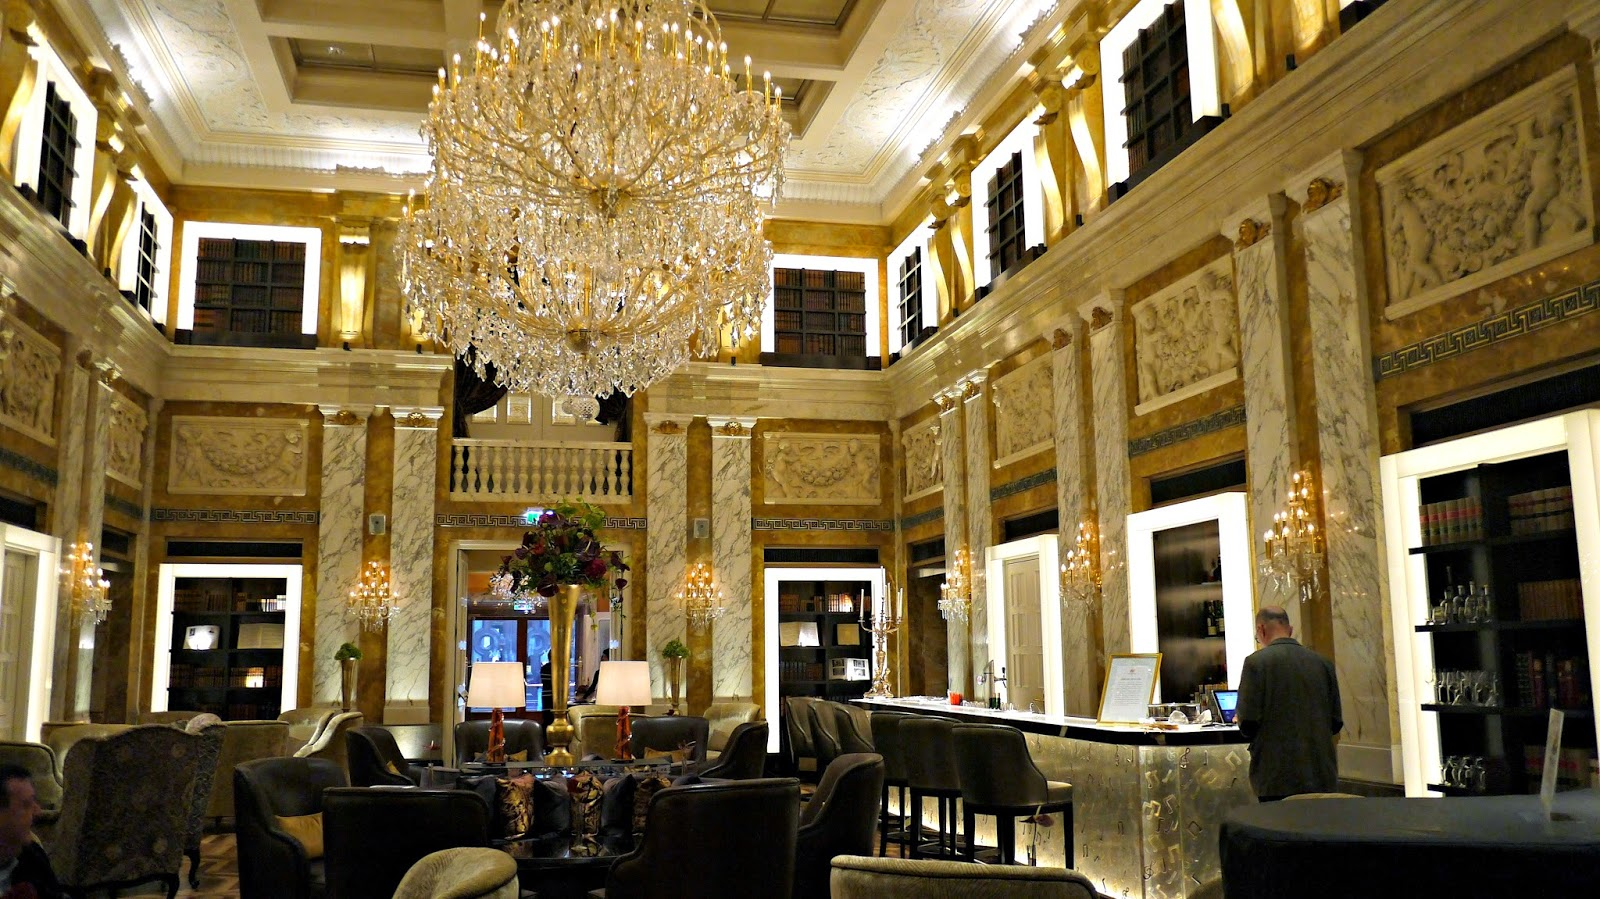 Hotel Imperial 1873 HalleNsalon bar